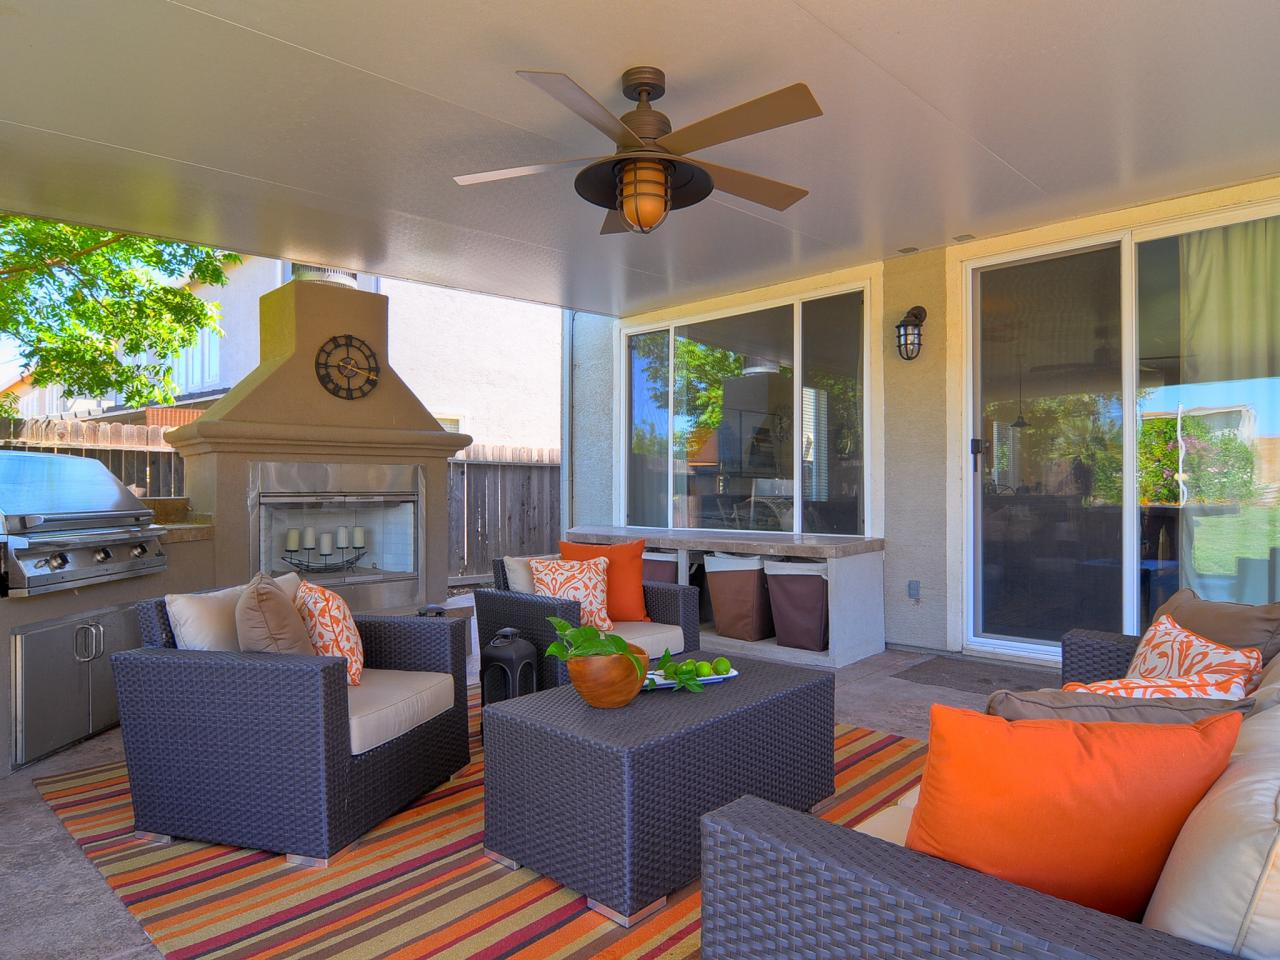 Colorful outdoor rooms outdoor spaces patio ideas for Contemporary outdoor living spaces